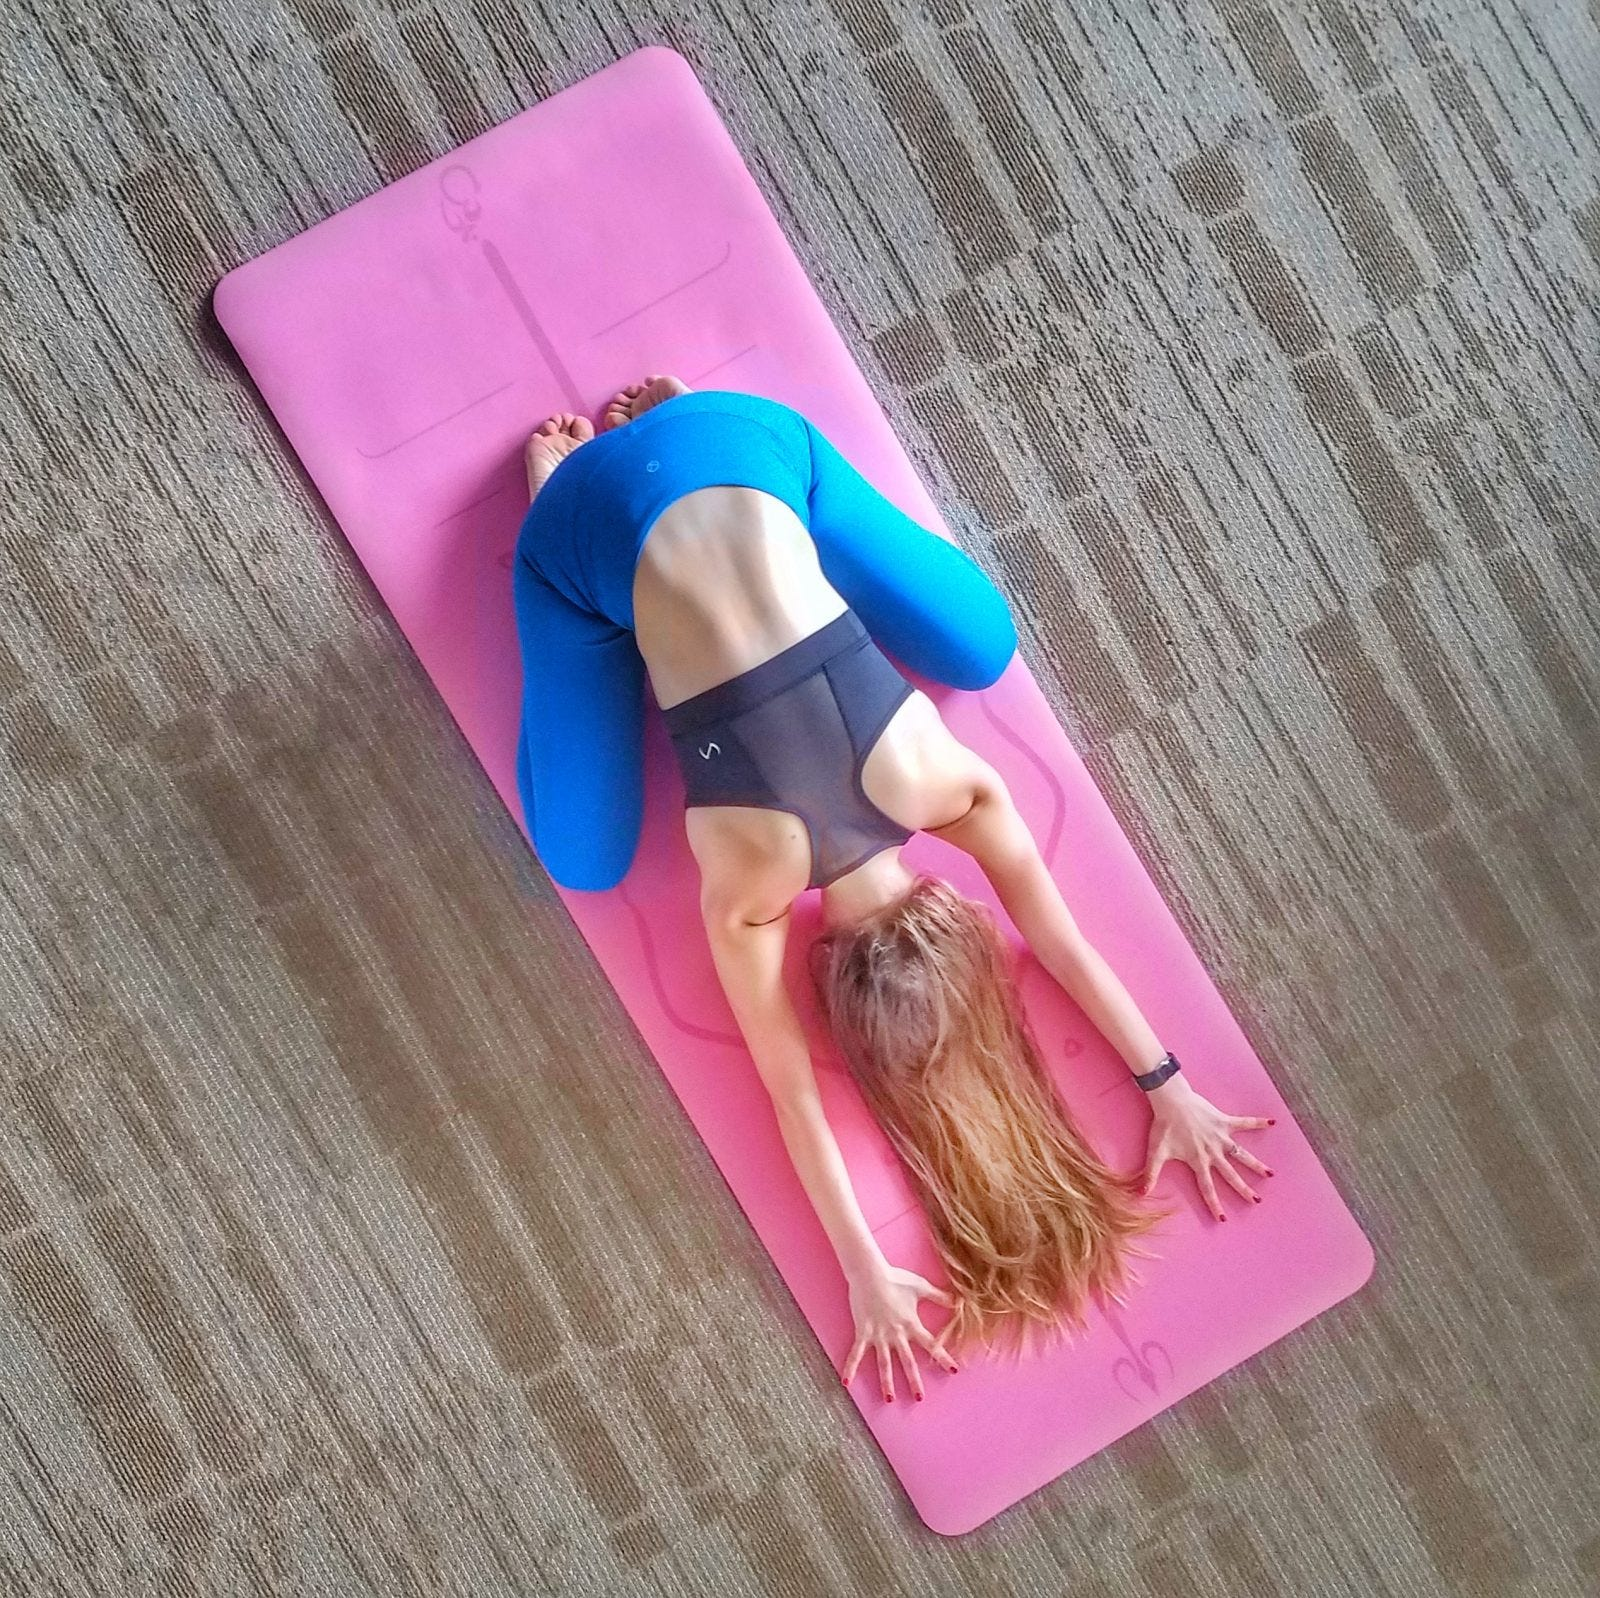 A woman in child's pose on a pink yoga mat.